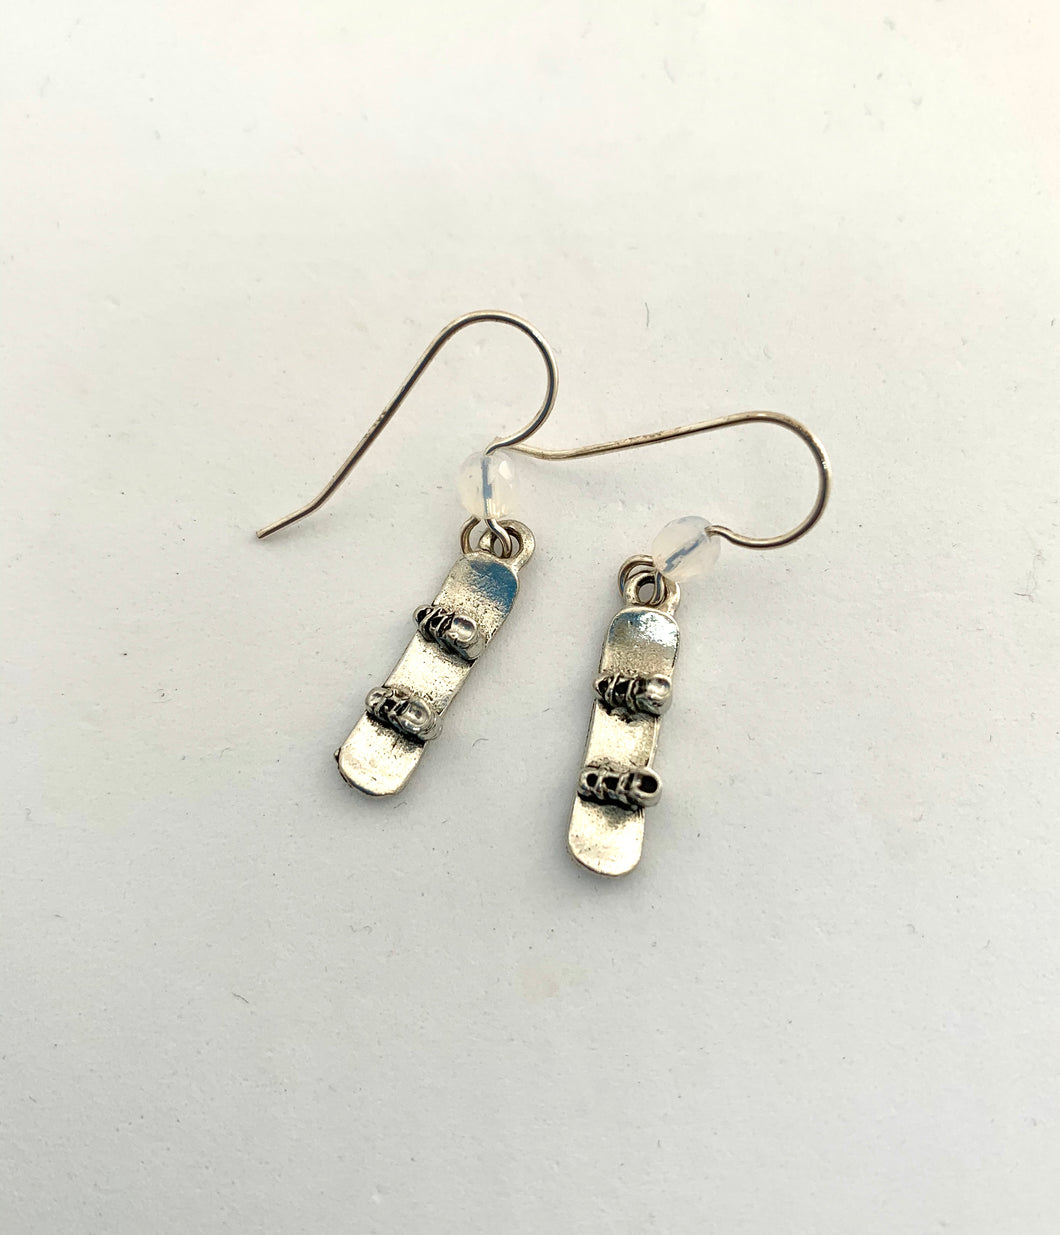 Snowboard Earrings - Lively Accents